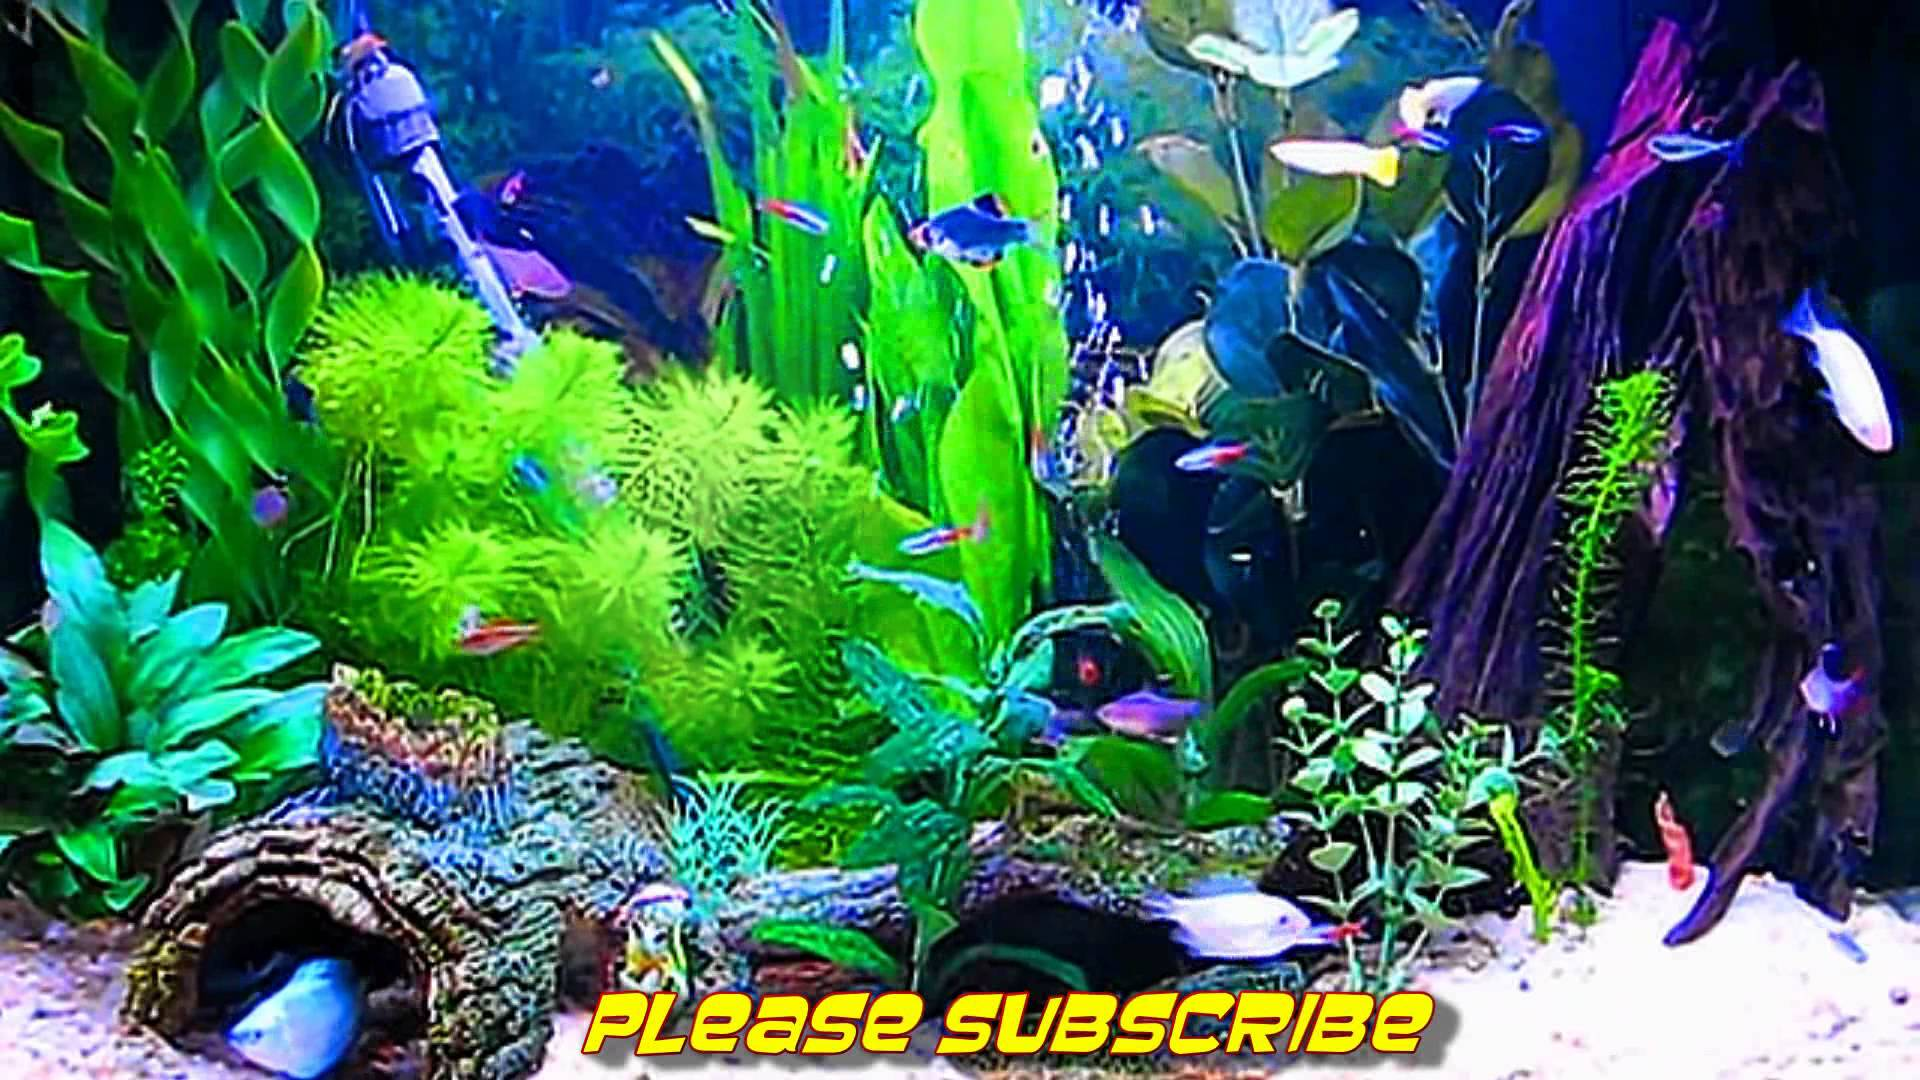 Amazing HD Aquarium ScreenSaver Windows and Android 1920x1080